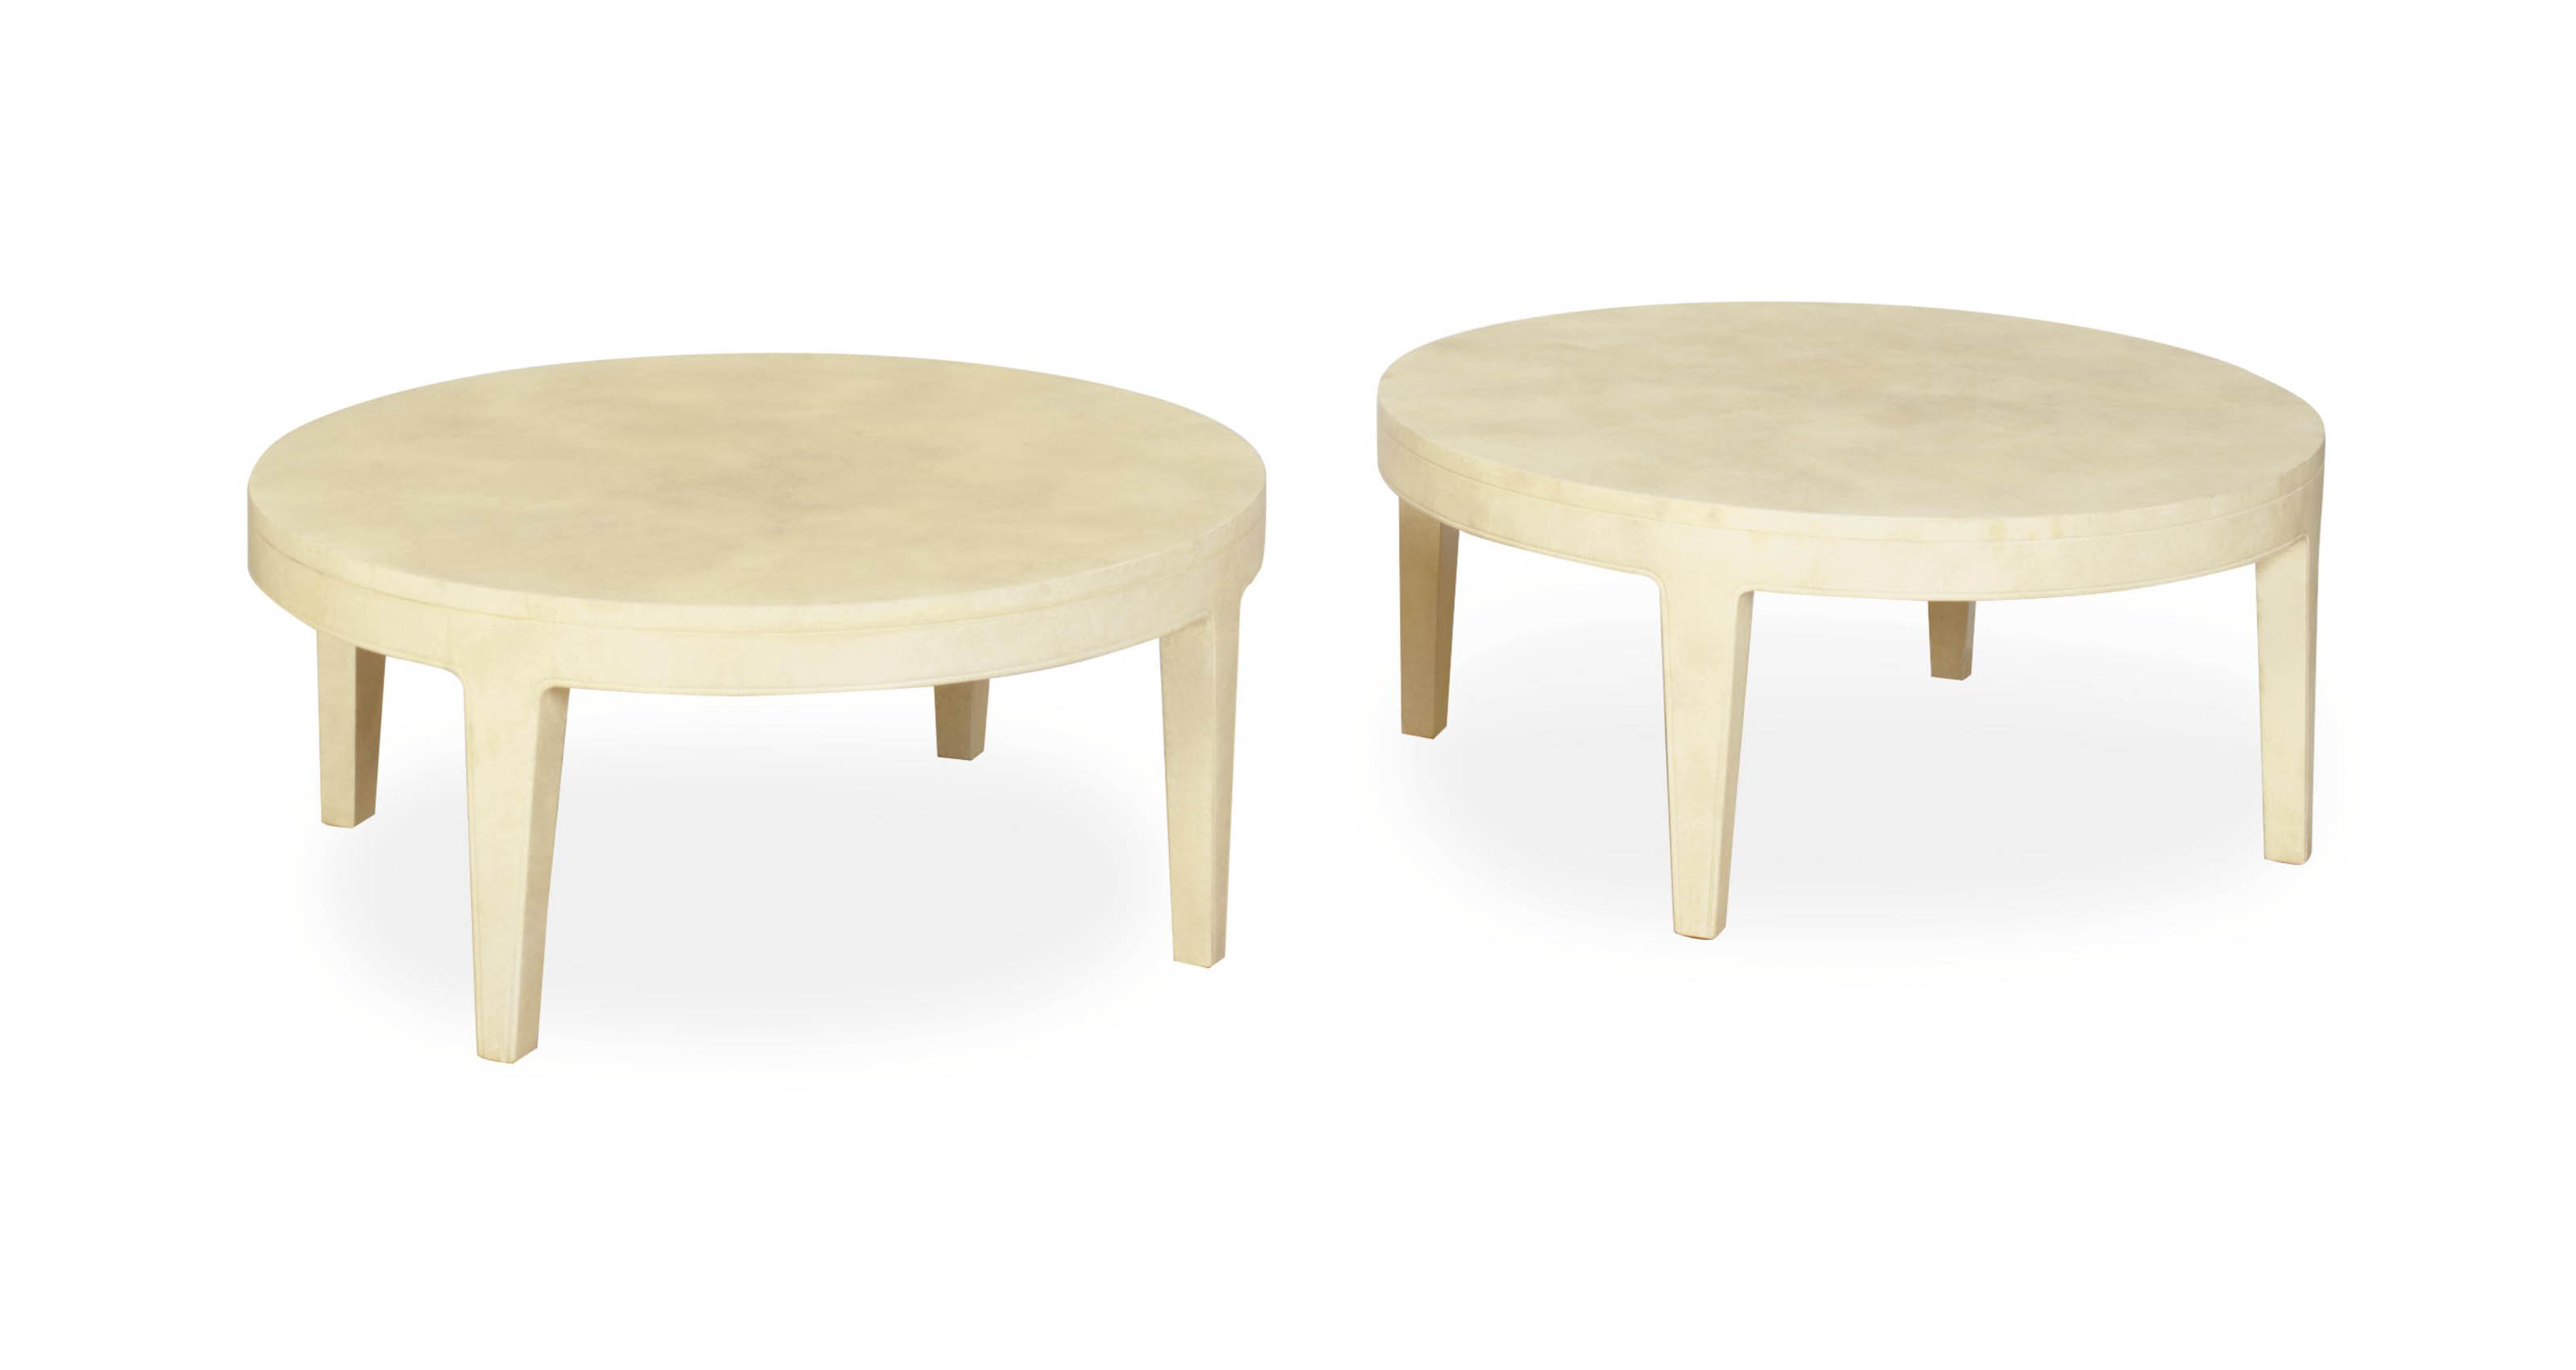 A PAIR OF FAUX PARCHMENT-PAINTED CIRCULAR LOW TABLES,